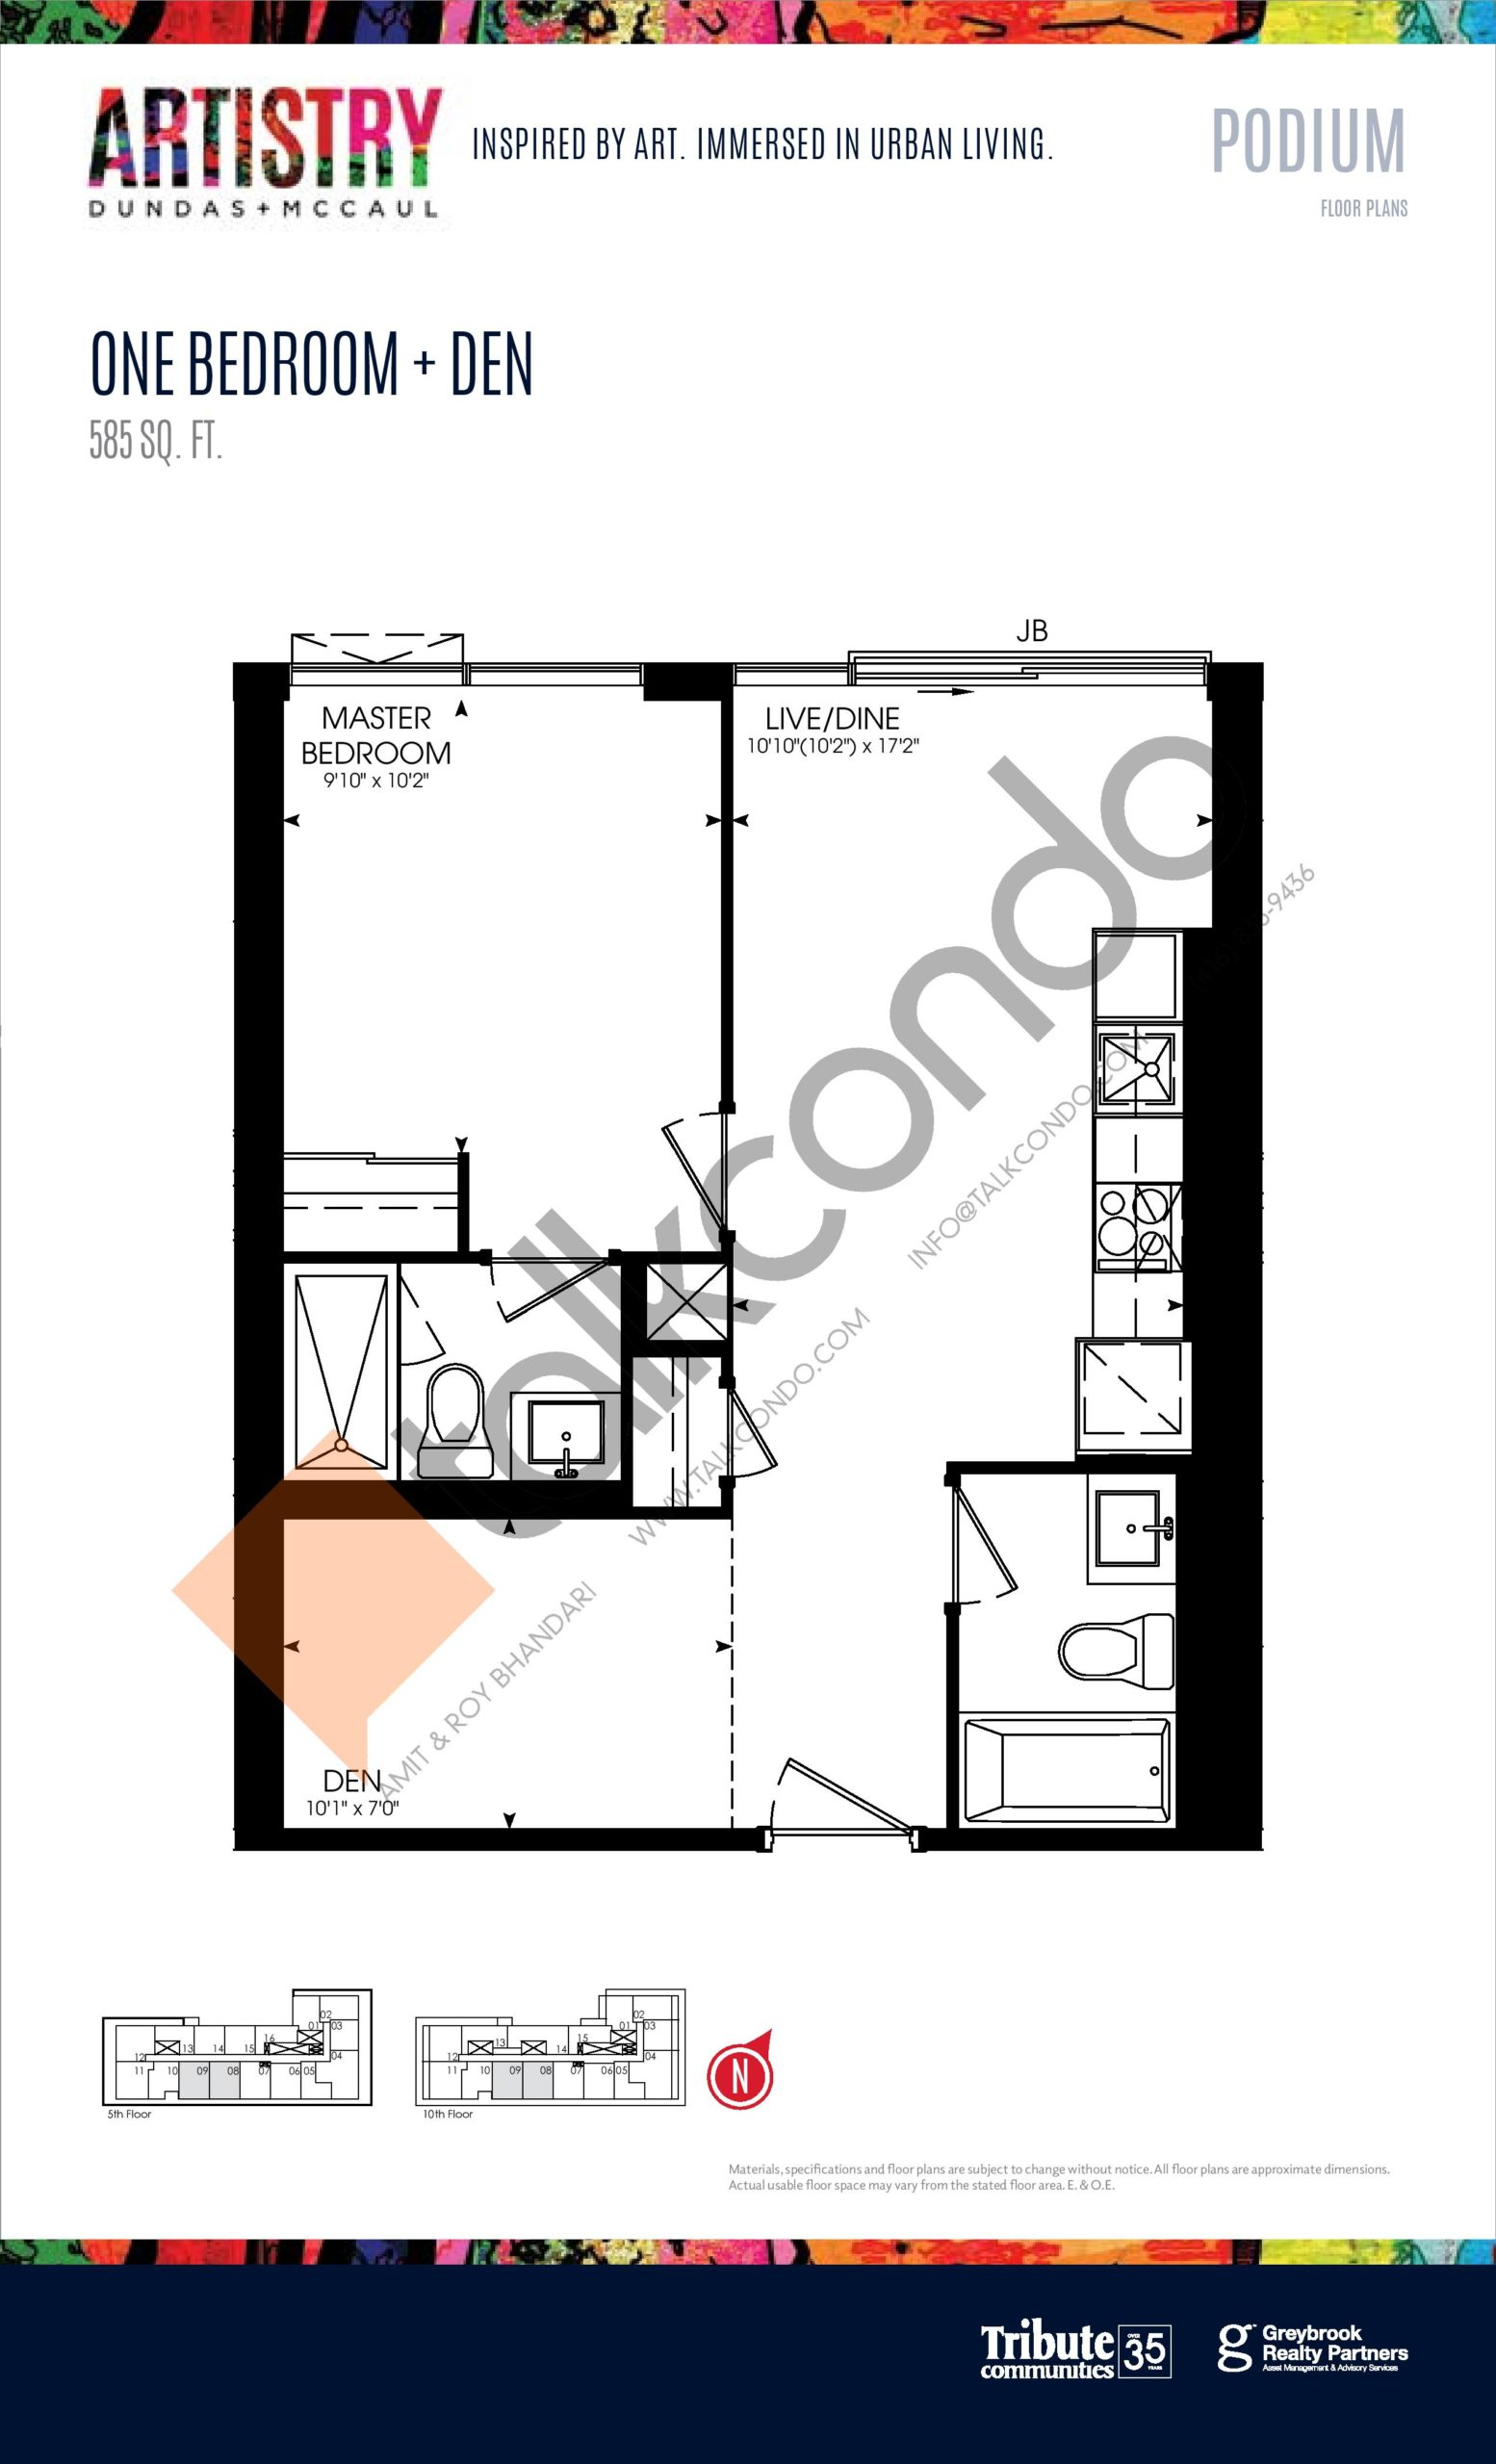 585 sq. ft. - Podium Floor Plan at Artistry Condos - 585 sq.ft